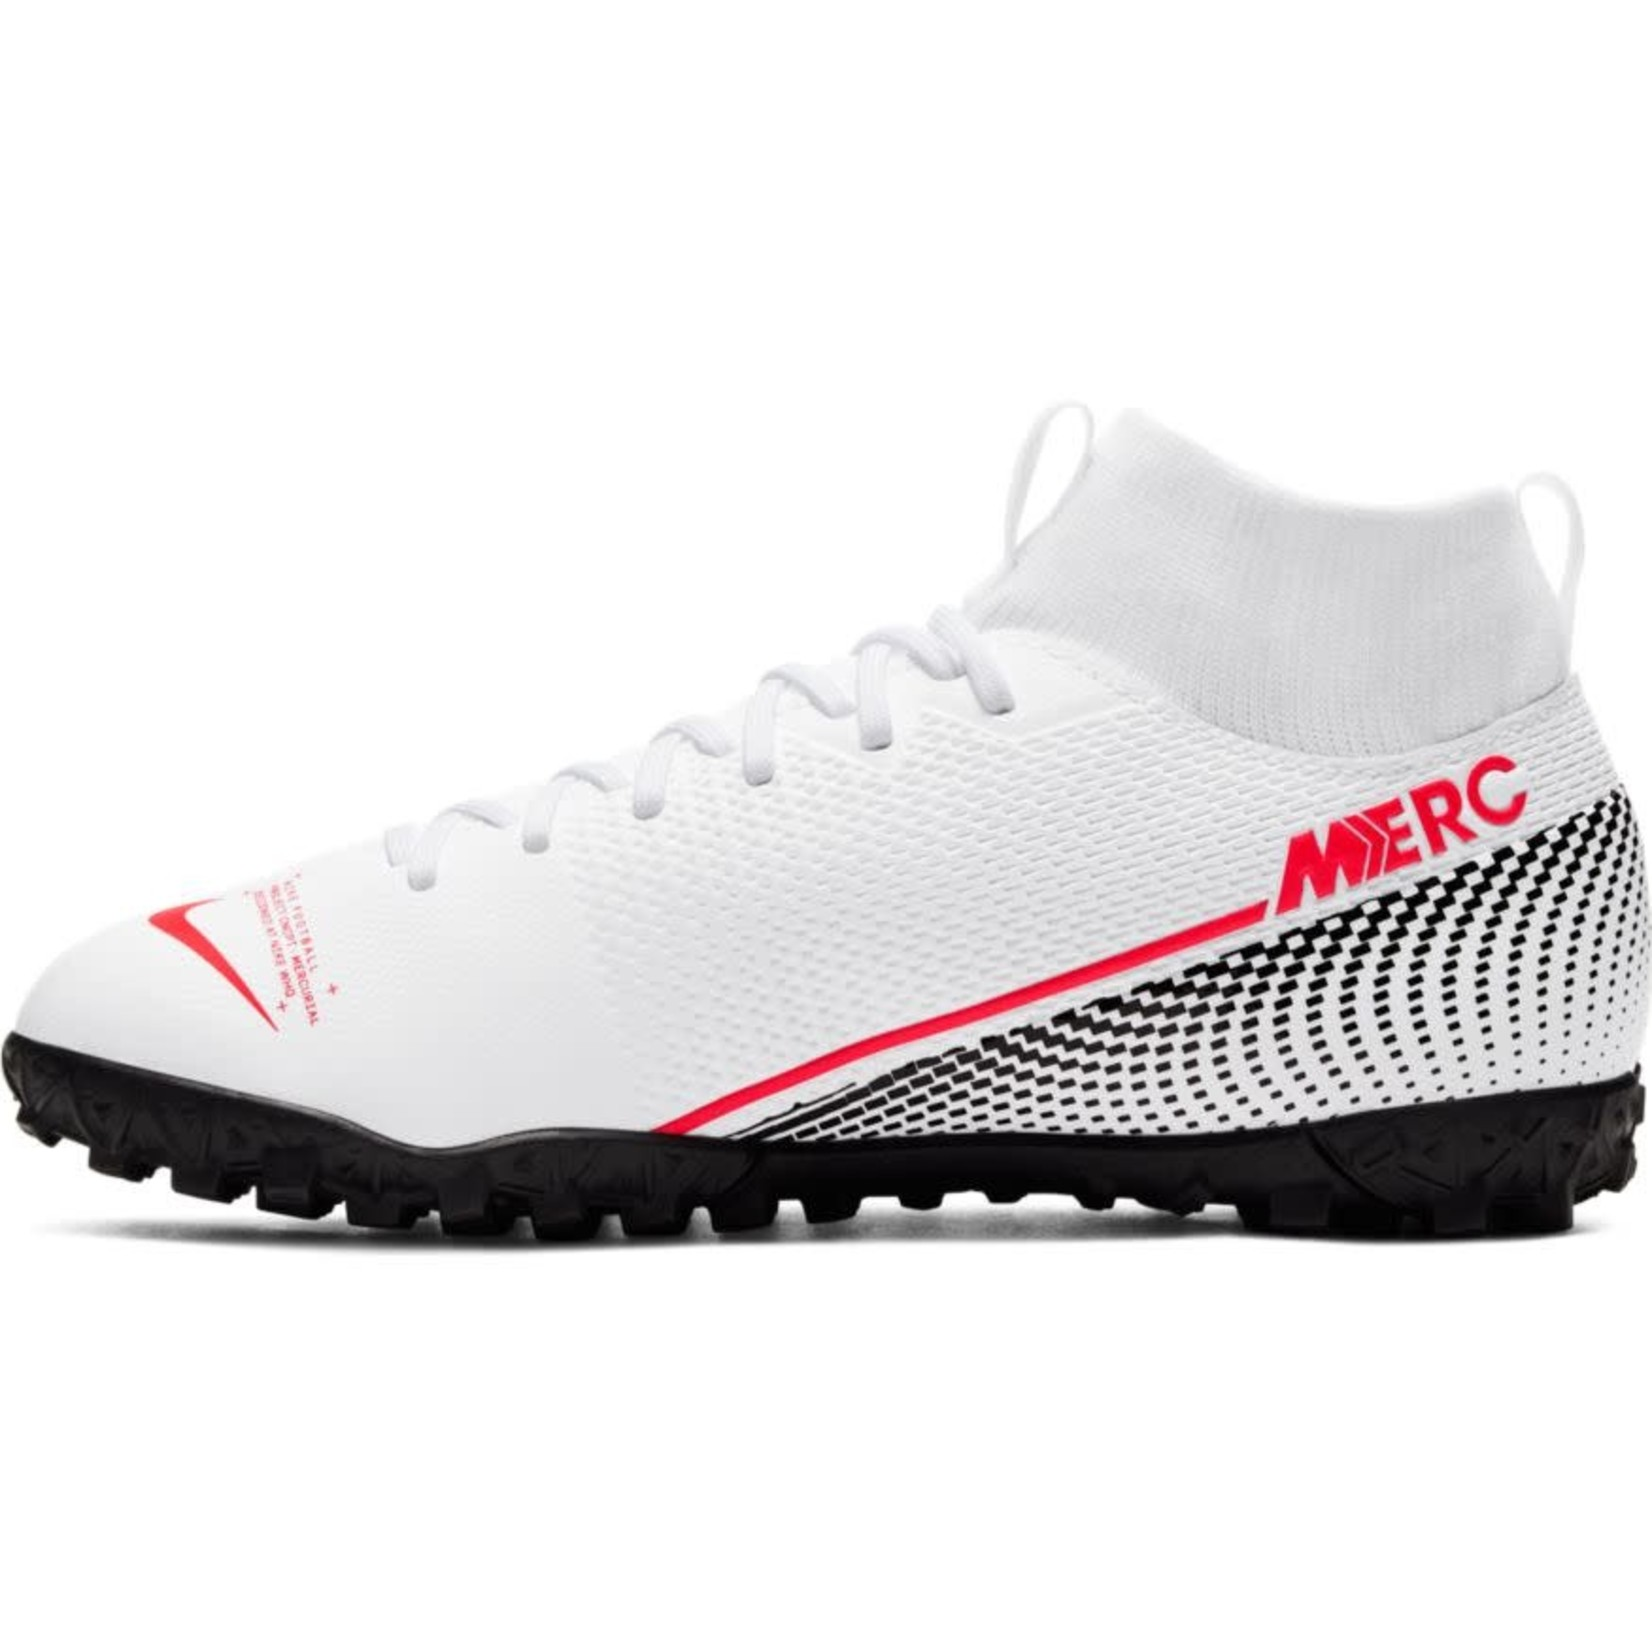 NIKE MERCURIAL SUPERFLY 7 ACADEMY TF JR (WHITE/RED)